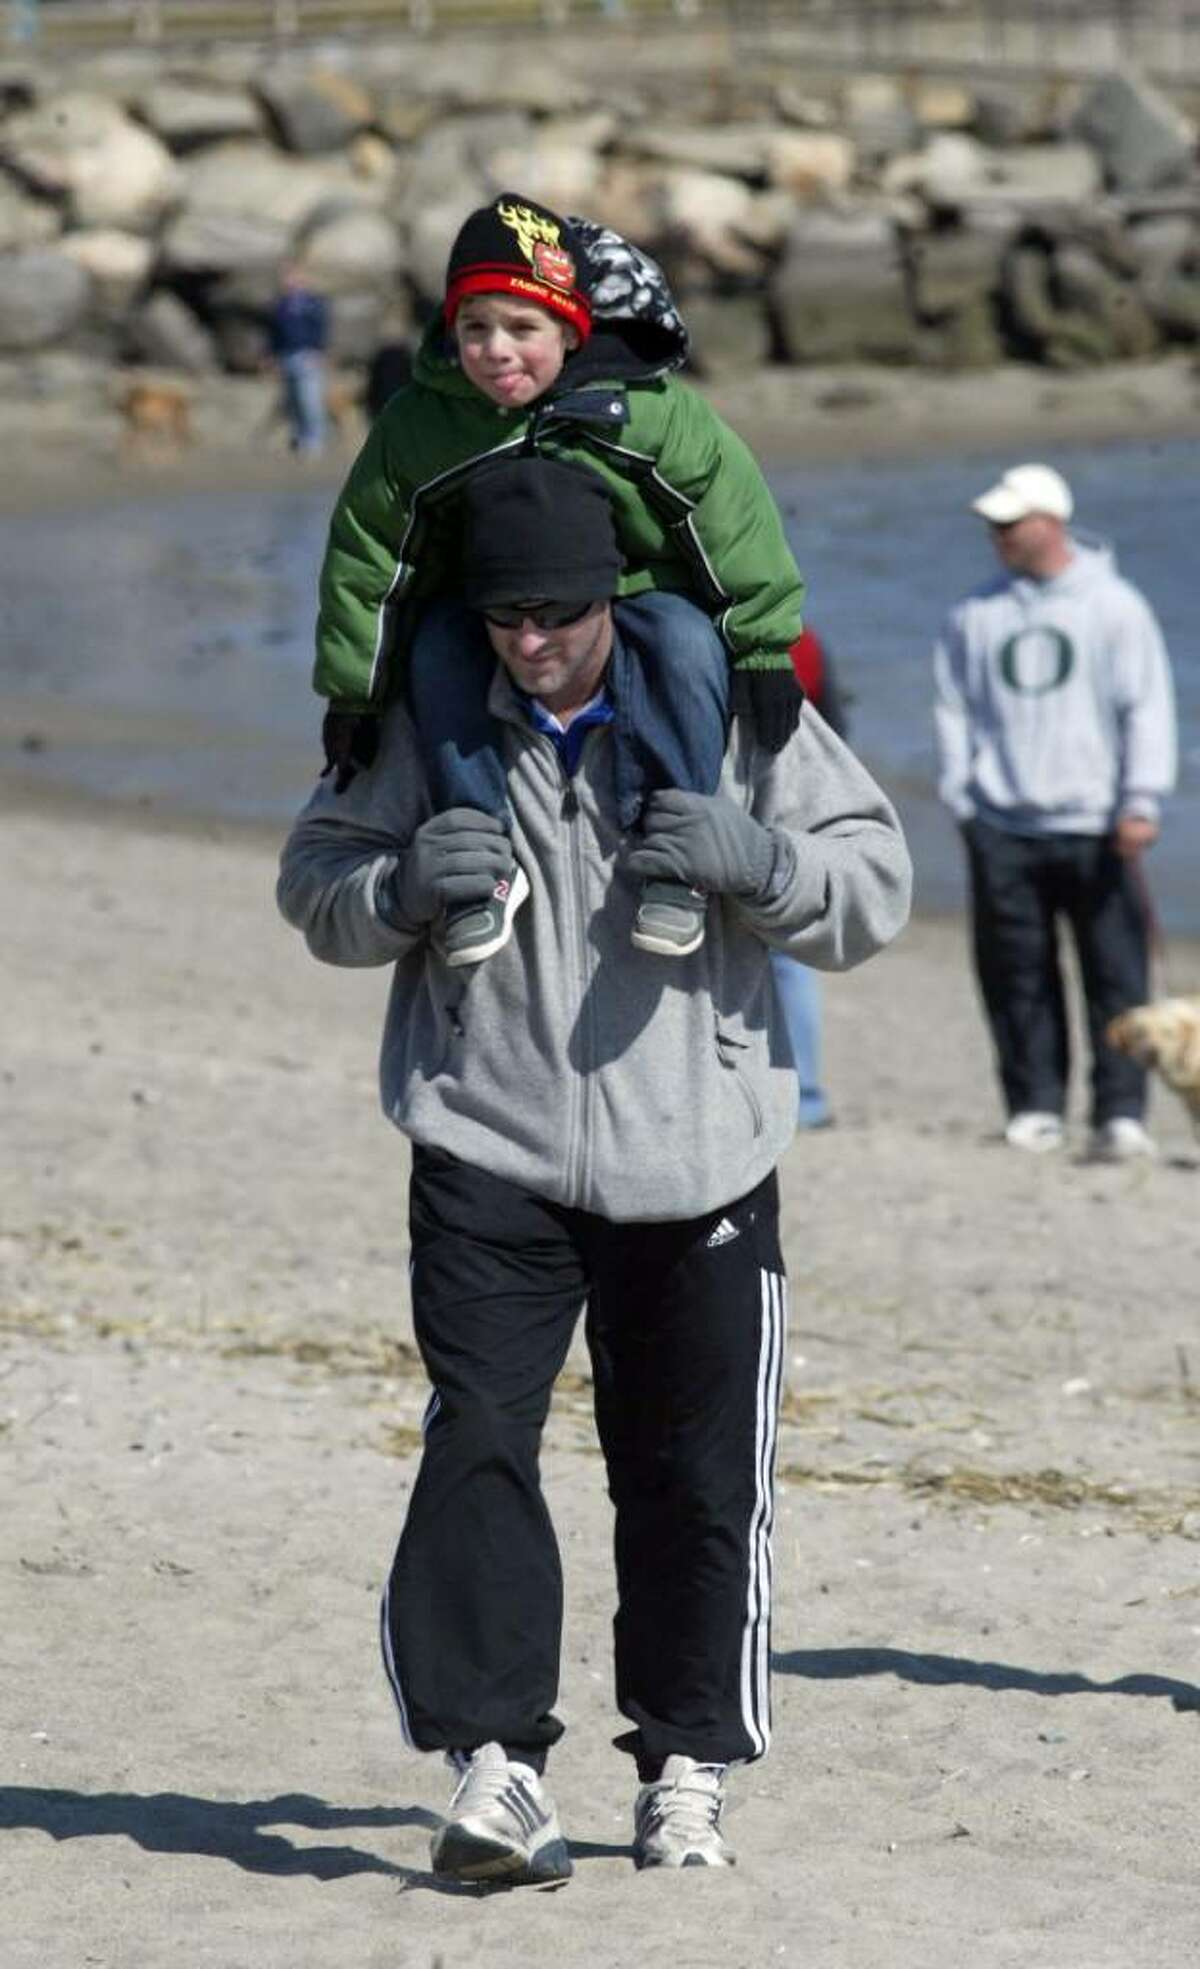 Ian Banner carries his son Hayen, 3, along Jennings Beach in Fairfield, Sunday, March 7, 2010. Hayden joined dozens of families, friends and pets walking along the beaches in the late winter sun.